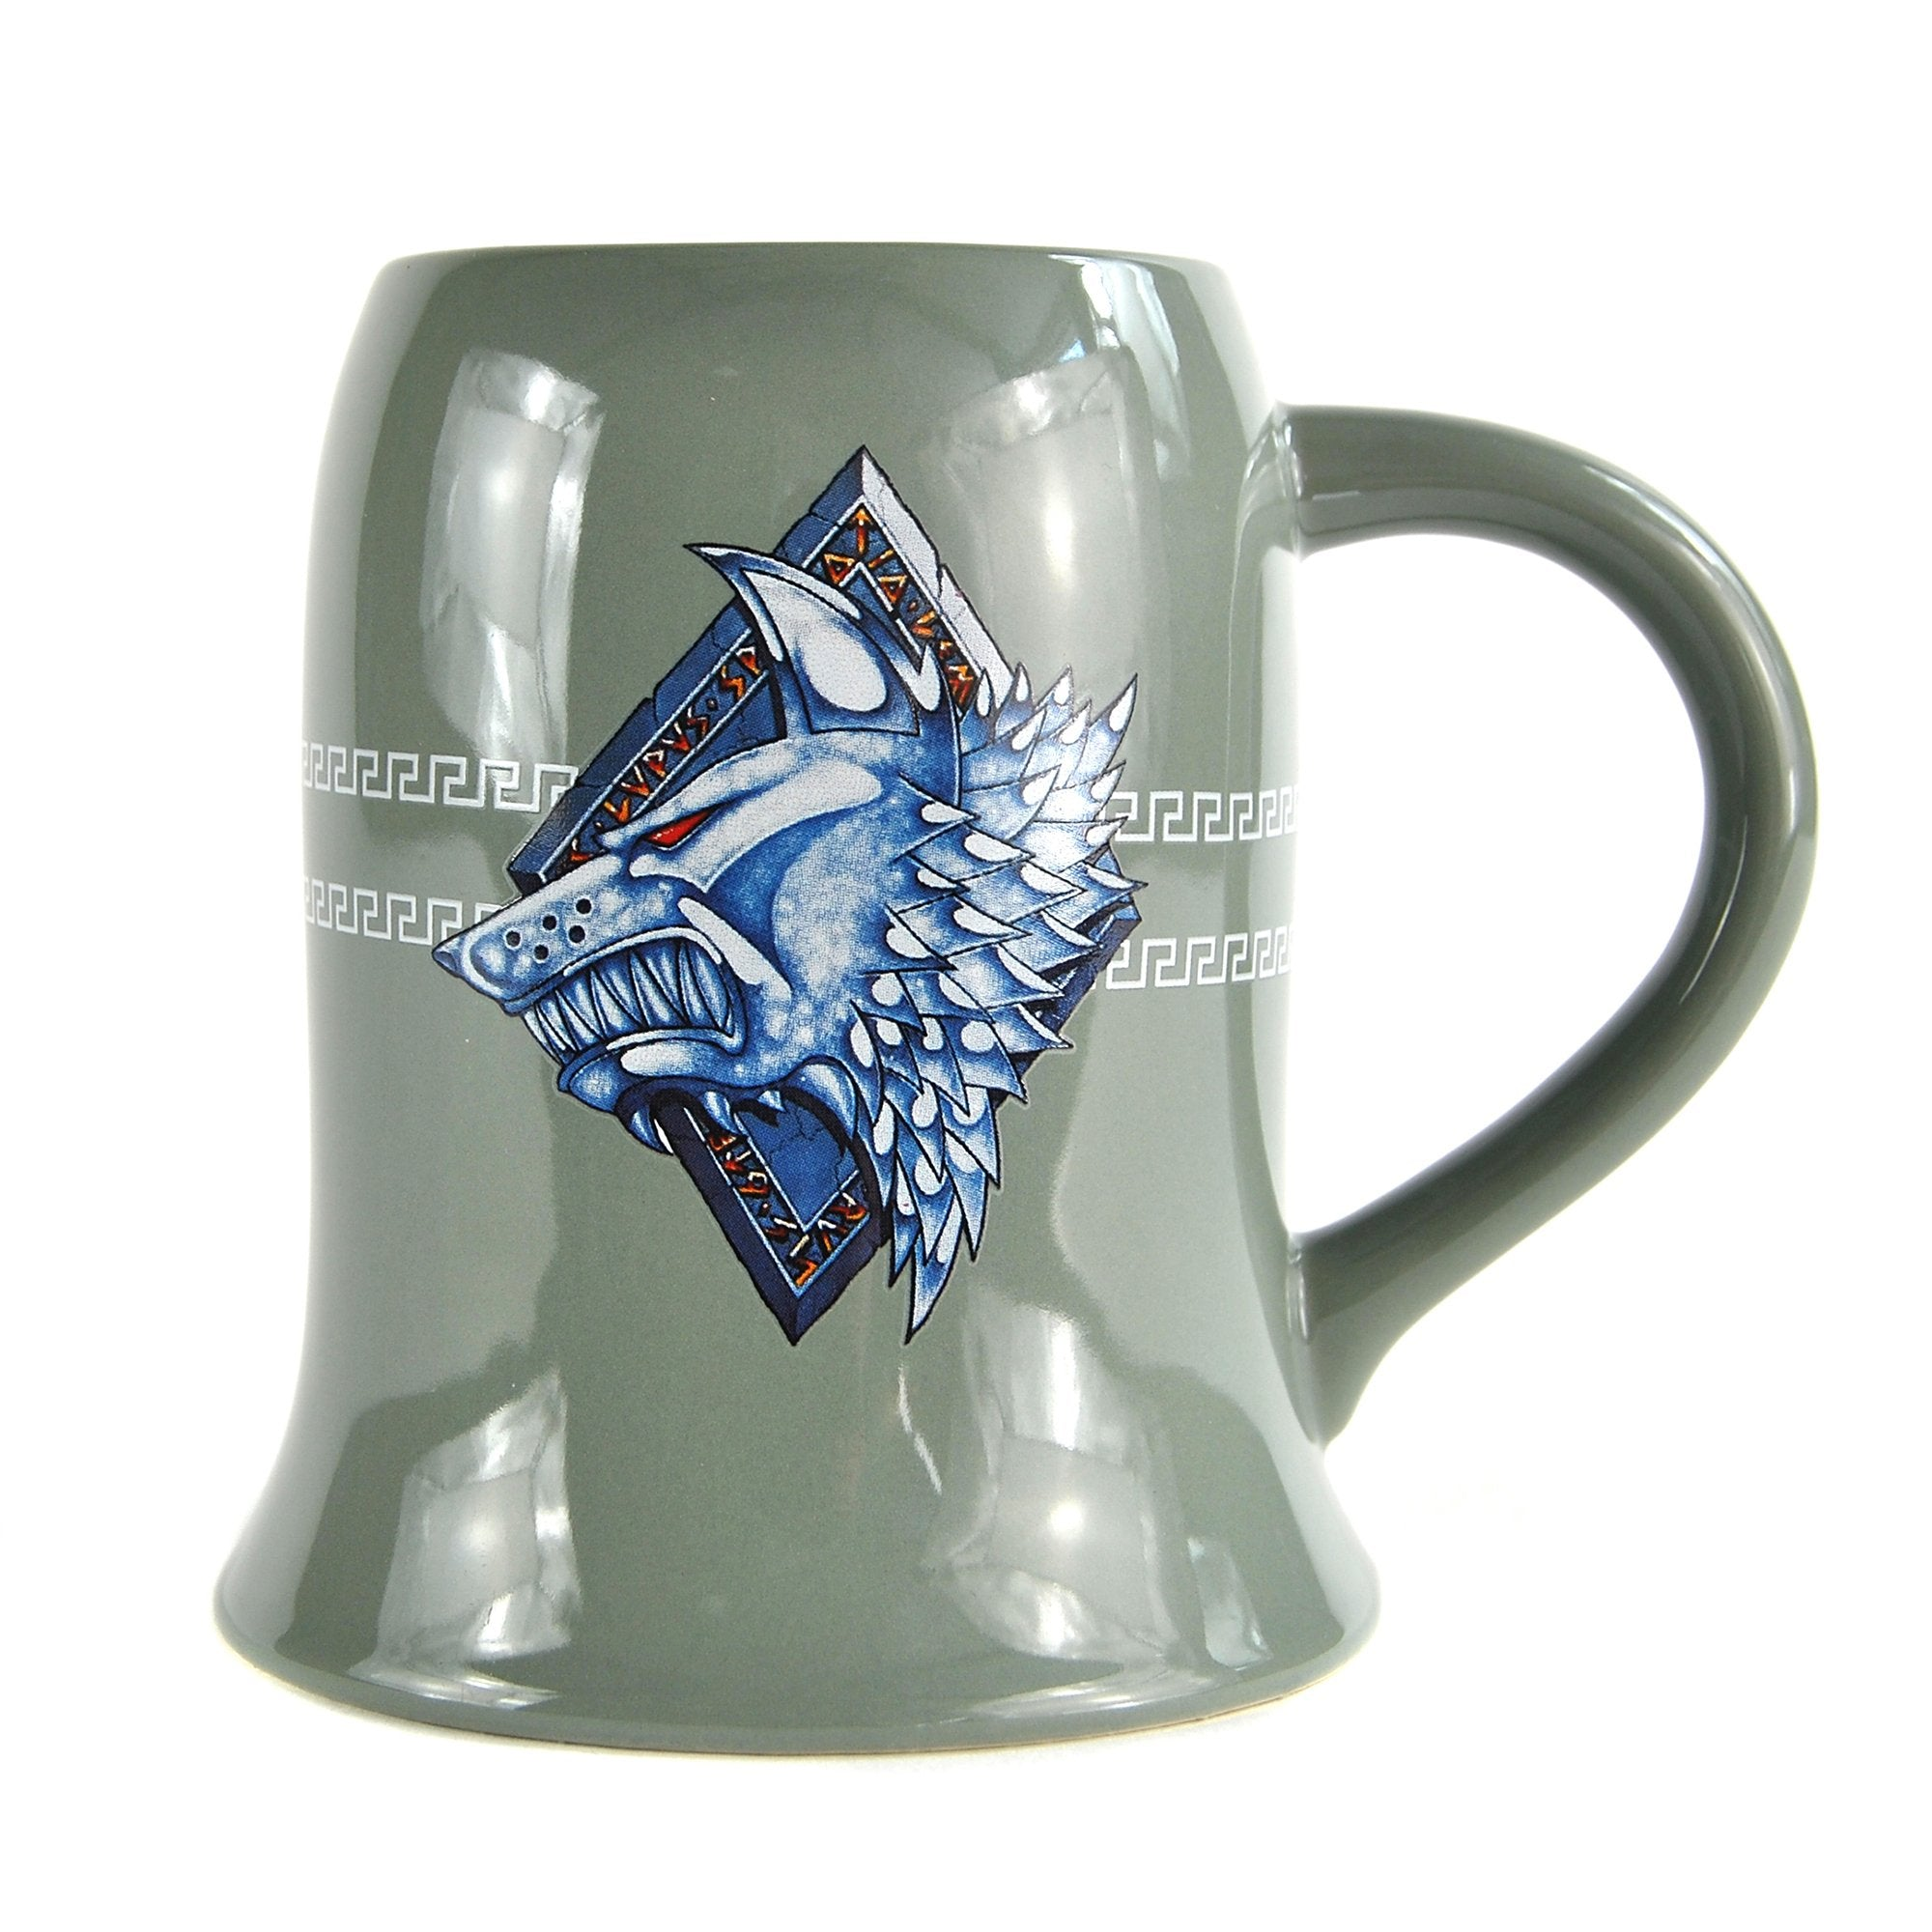 Warhammer 40,000 Tankard Mug - Space Wolves - Half Moon Bay US